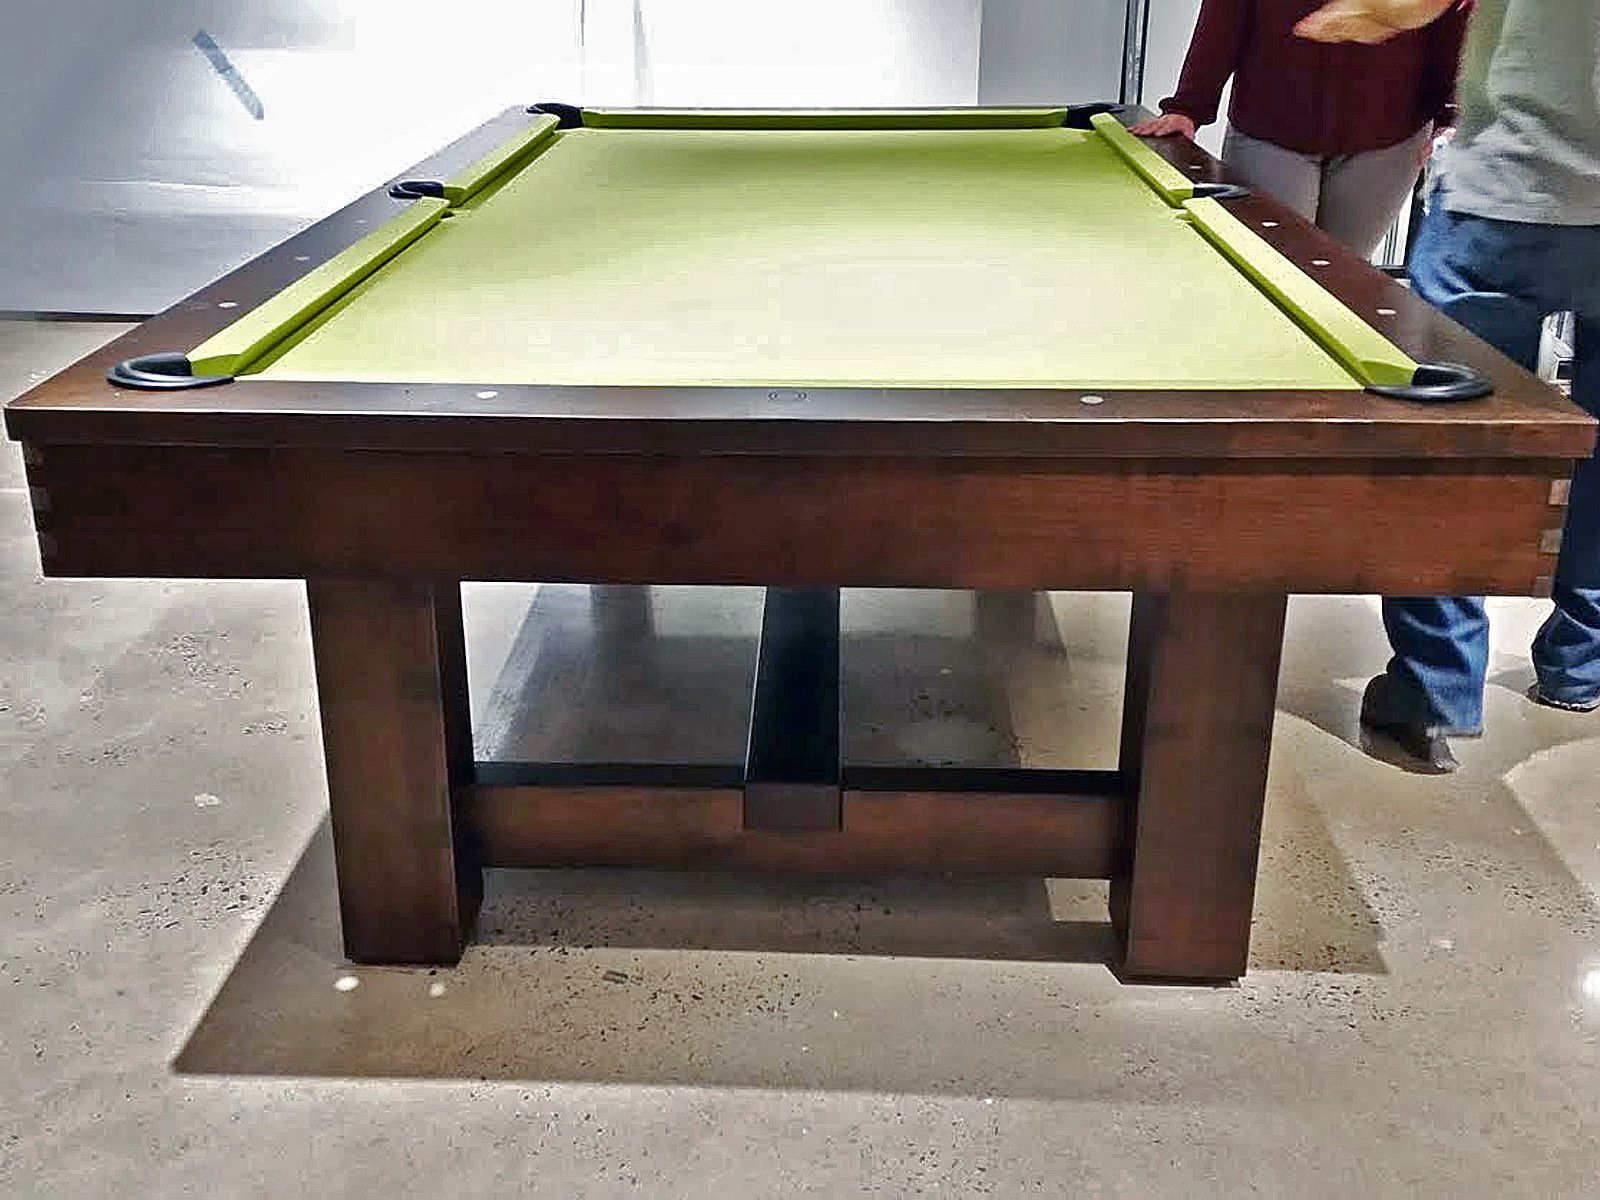 olhausen breckenridge pool table by olhausen billiards : buy